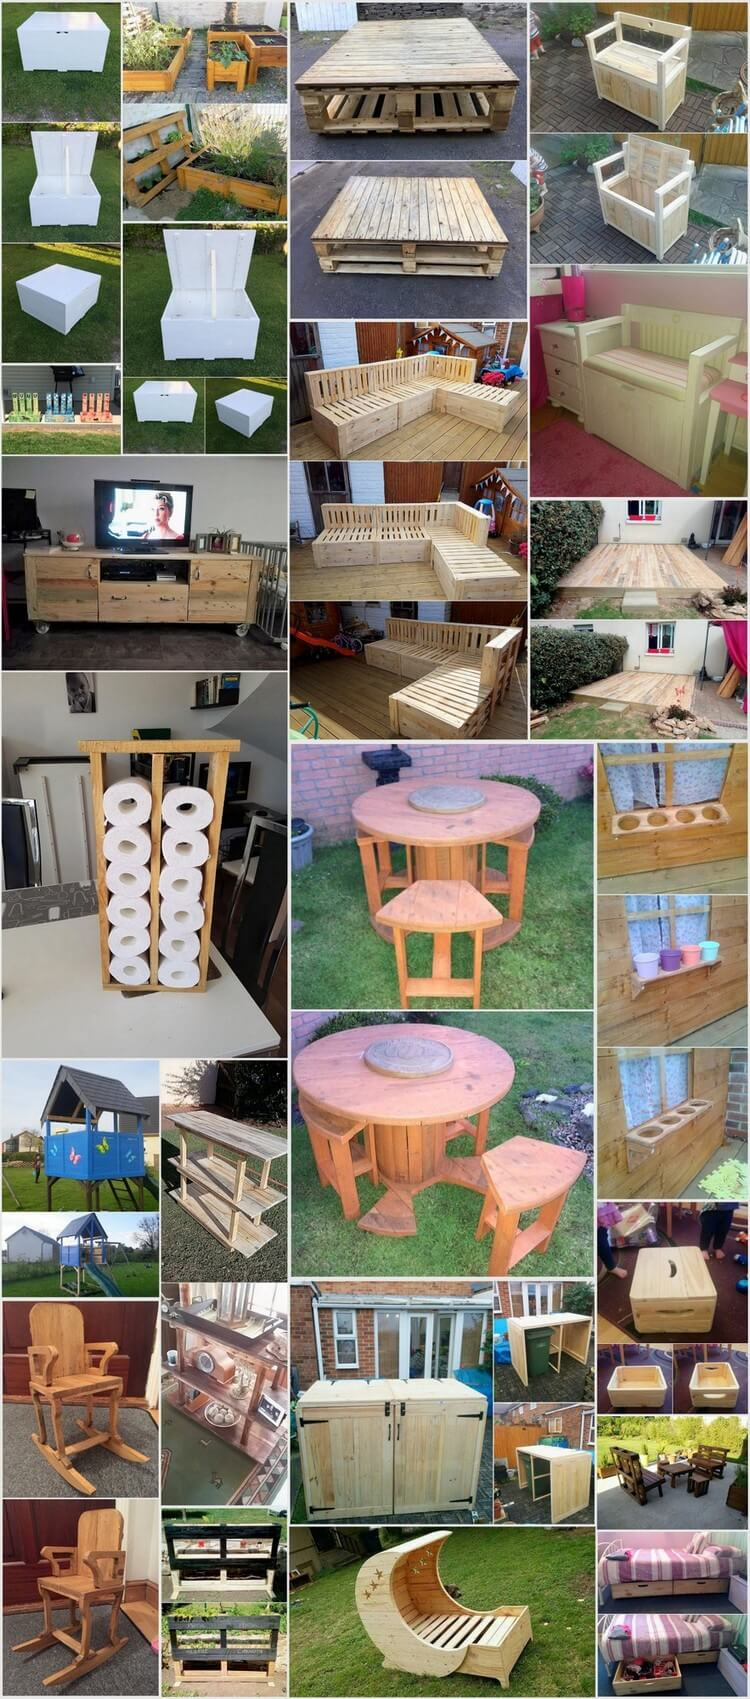 Great Imaginations for Recycling Shipping Wood Pallets